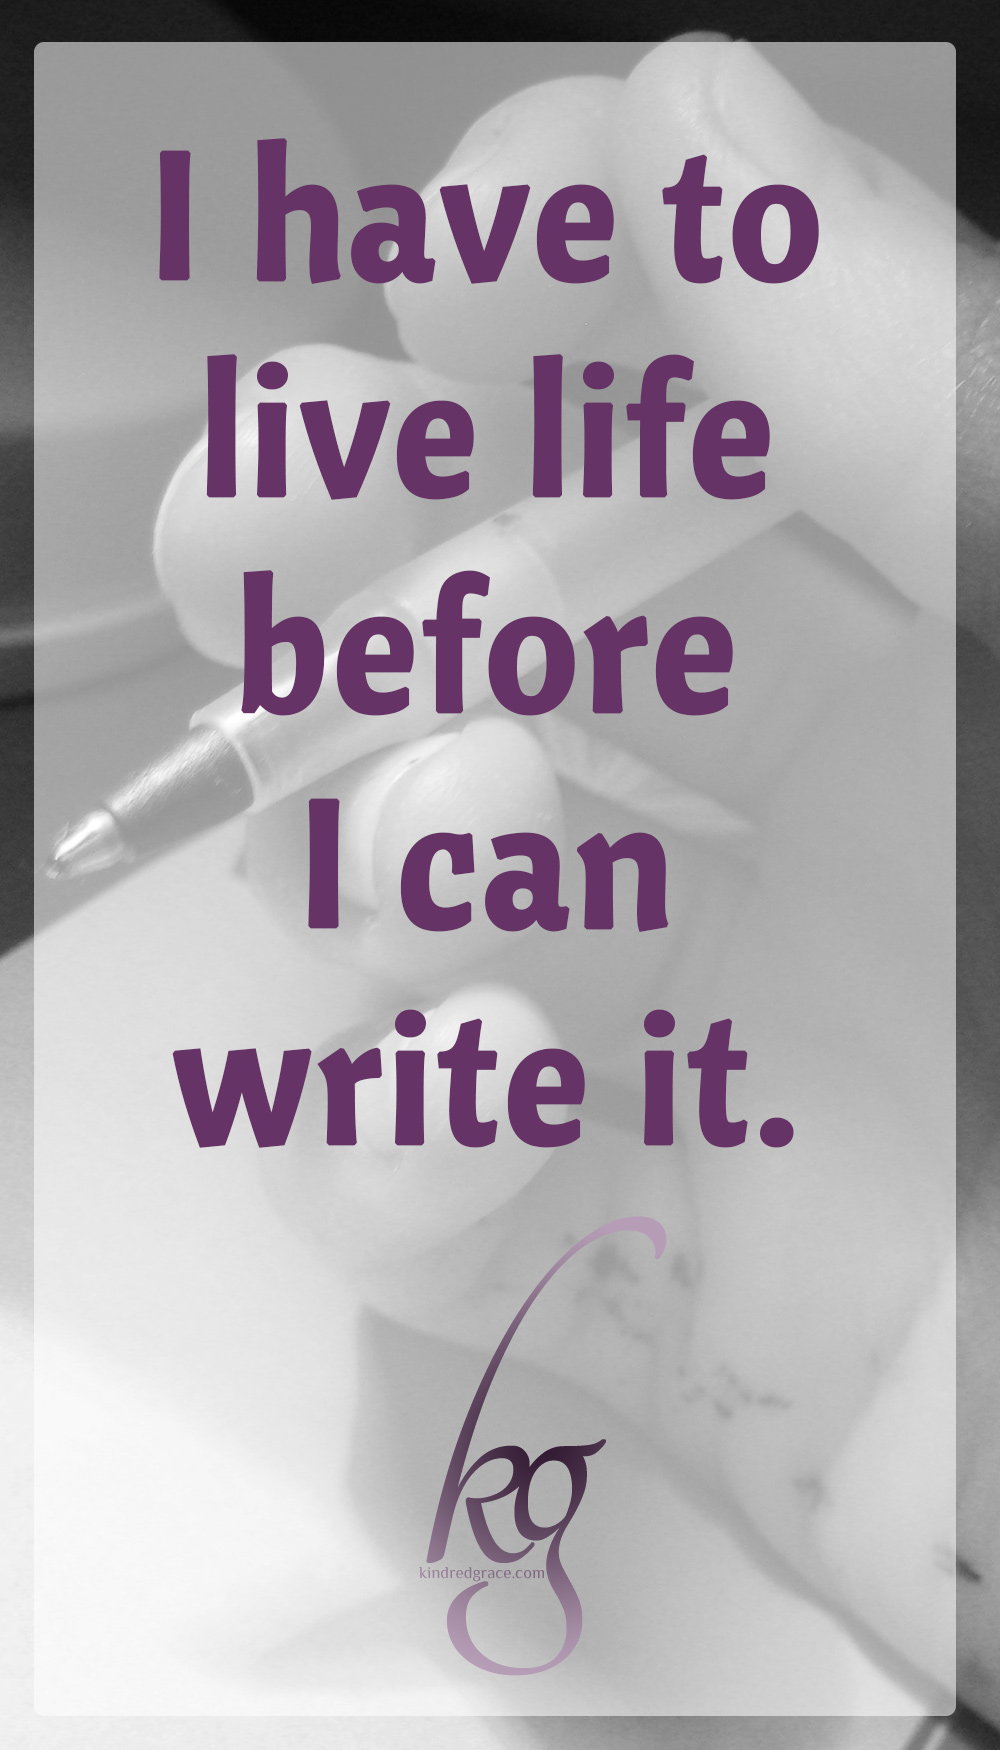 I have to live life before I can write it. via @KindredGrace